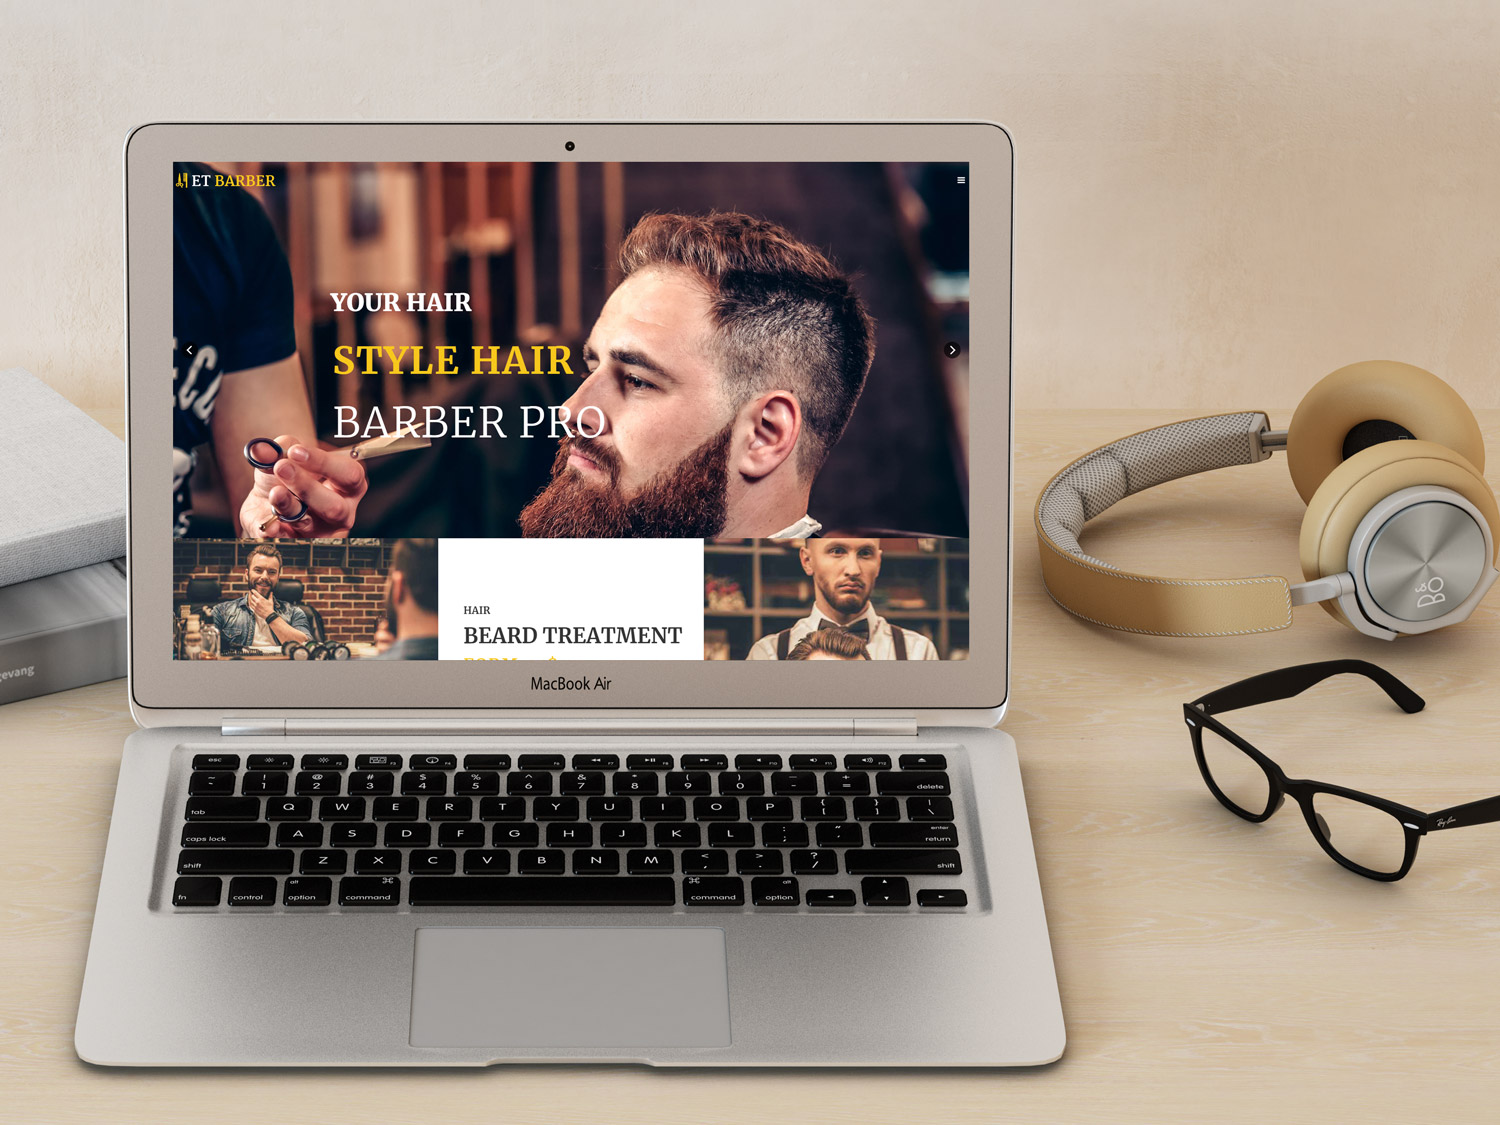 et-barber-free-responsive-joomla-template-screenshor